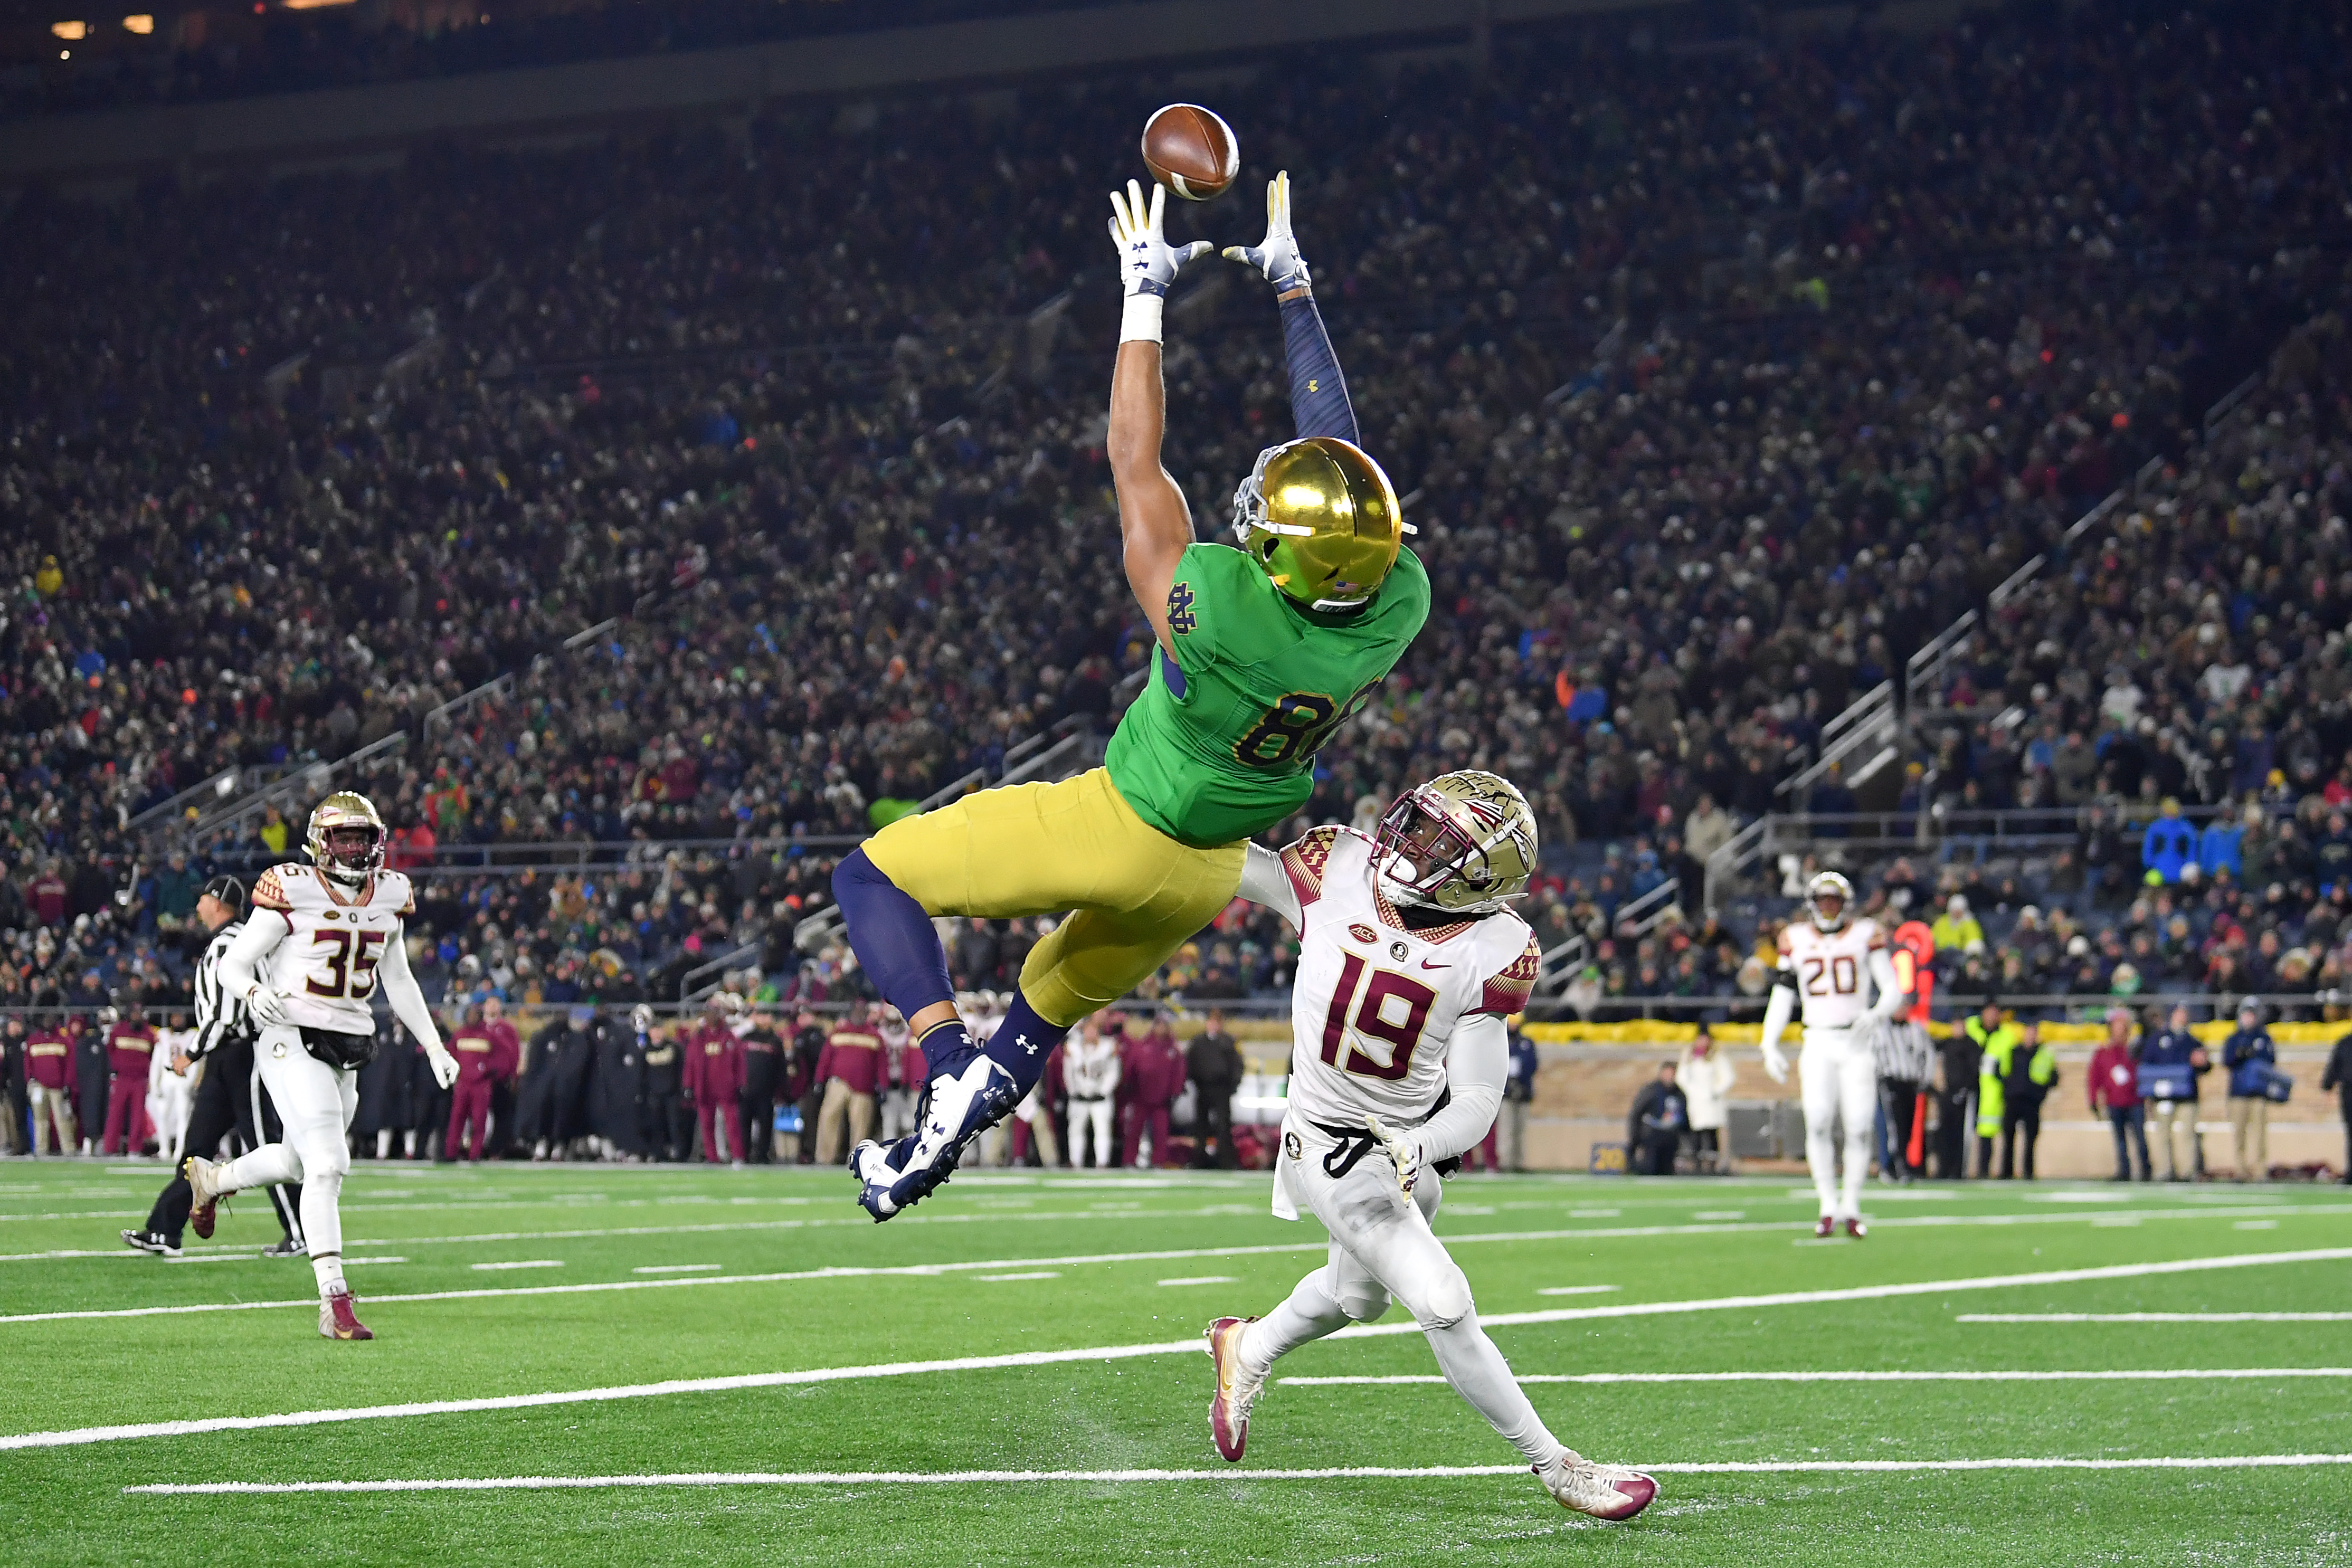 COLLEGE FOOTBALL: NOV 10 Florida State at Notre Dame